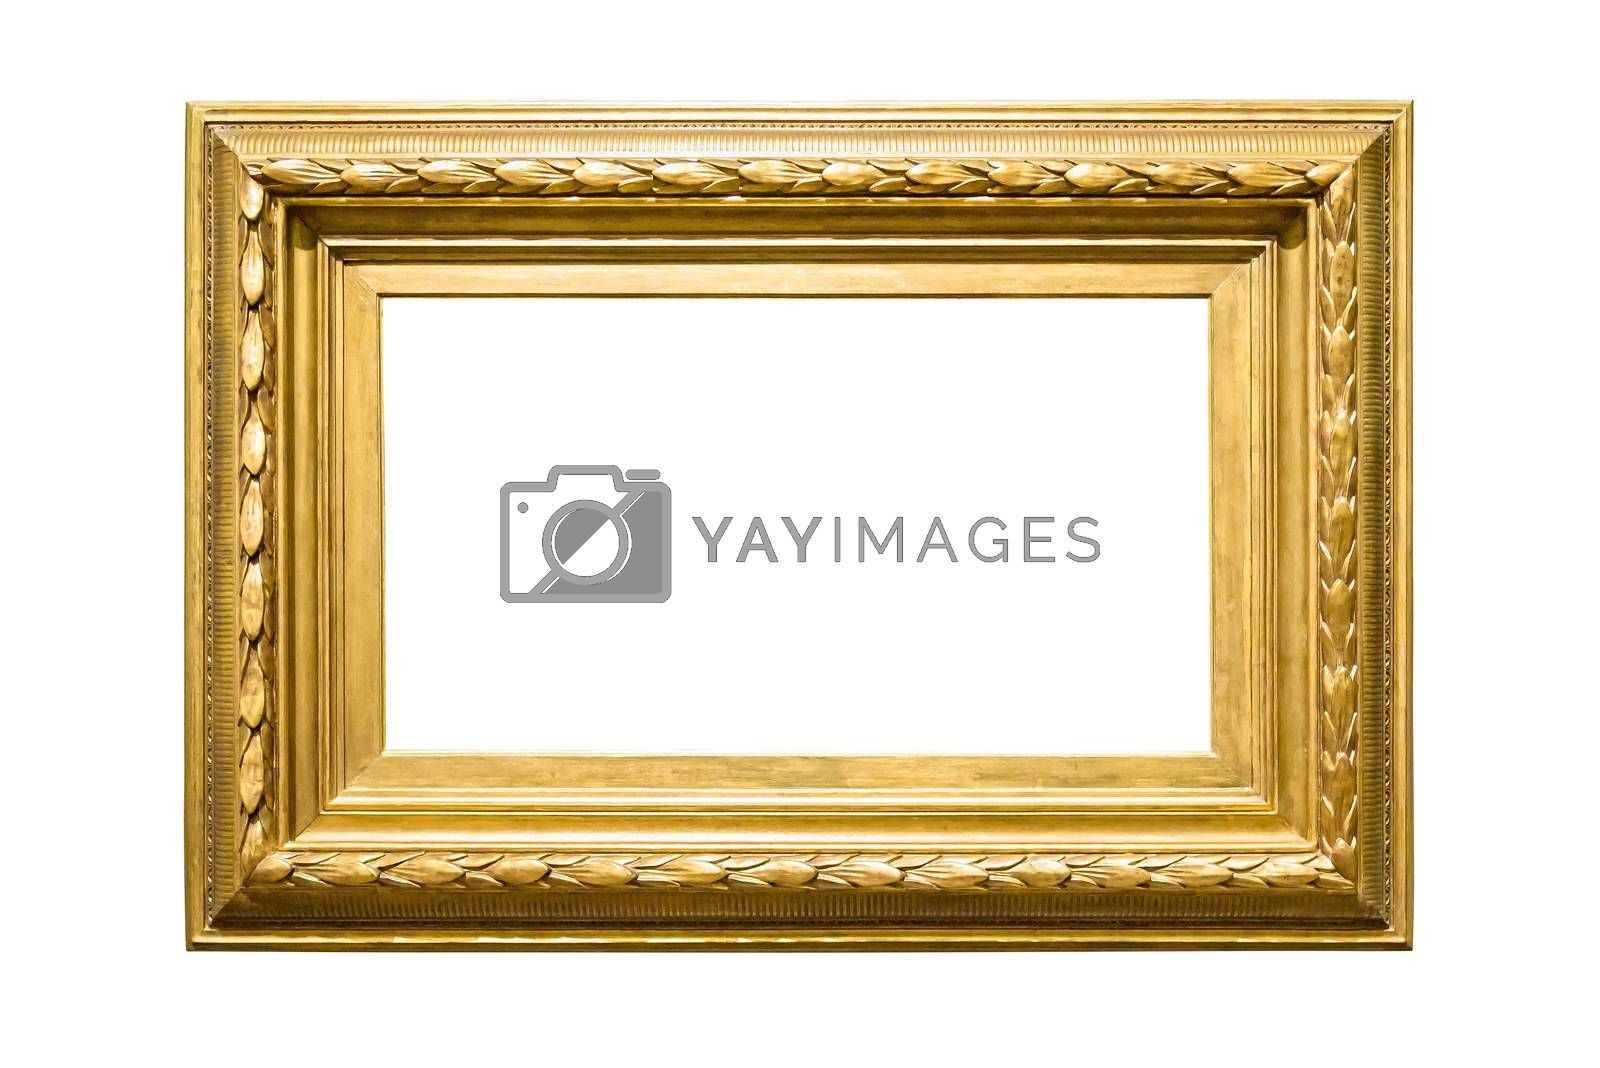 Royalty free image of Landscape golden decorative picture frame on white background by mkos83